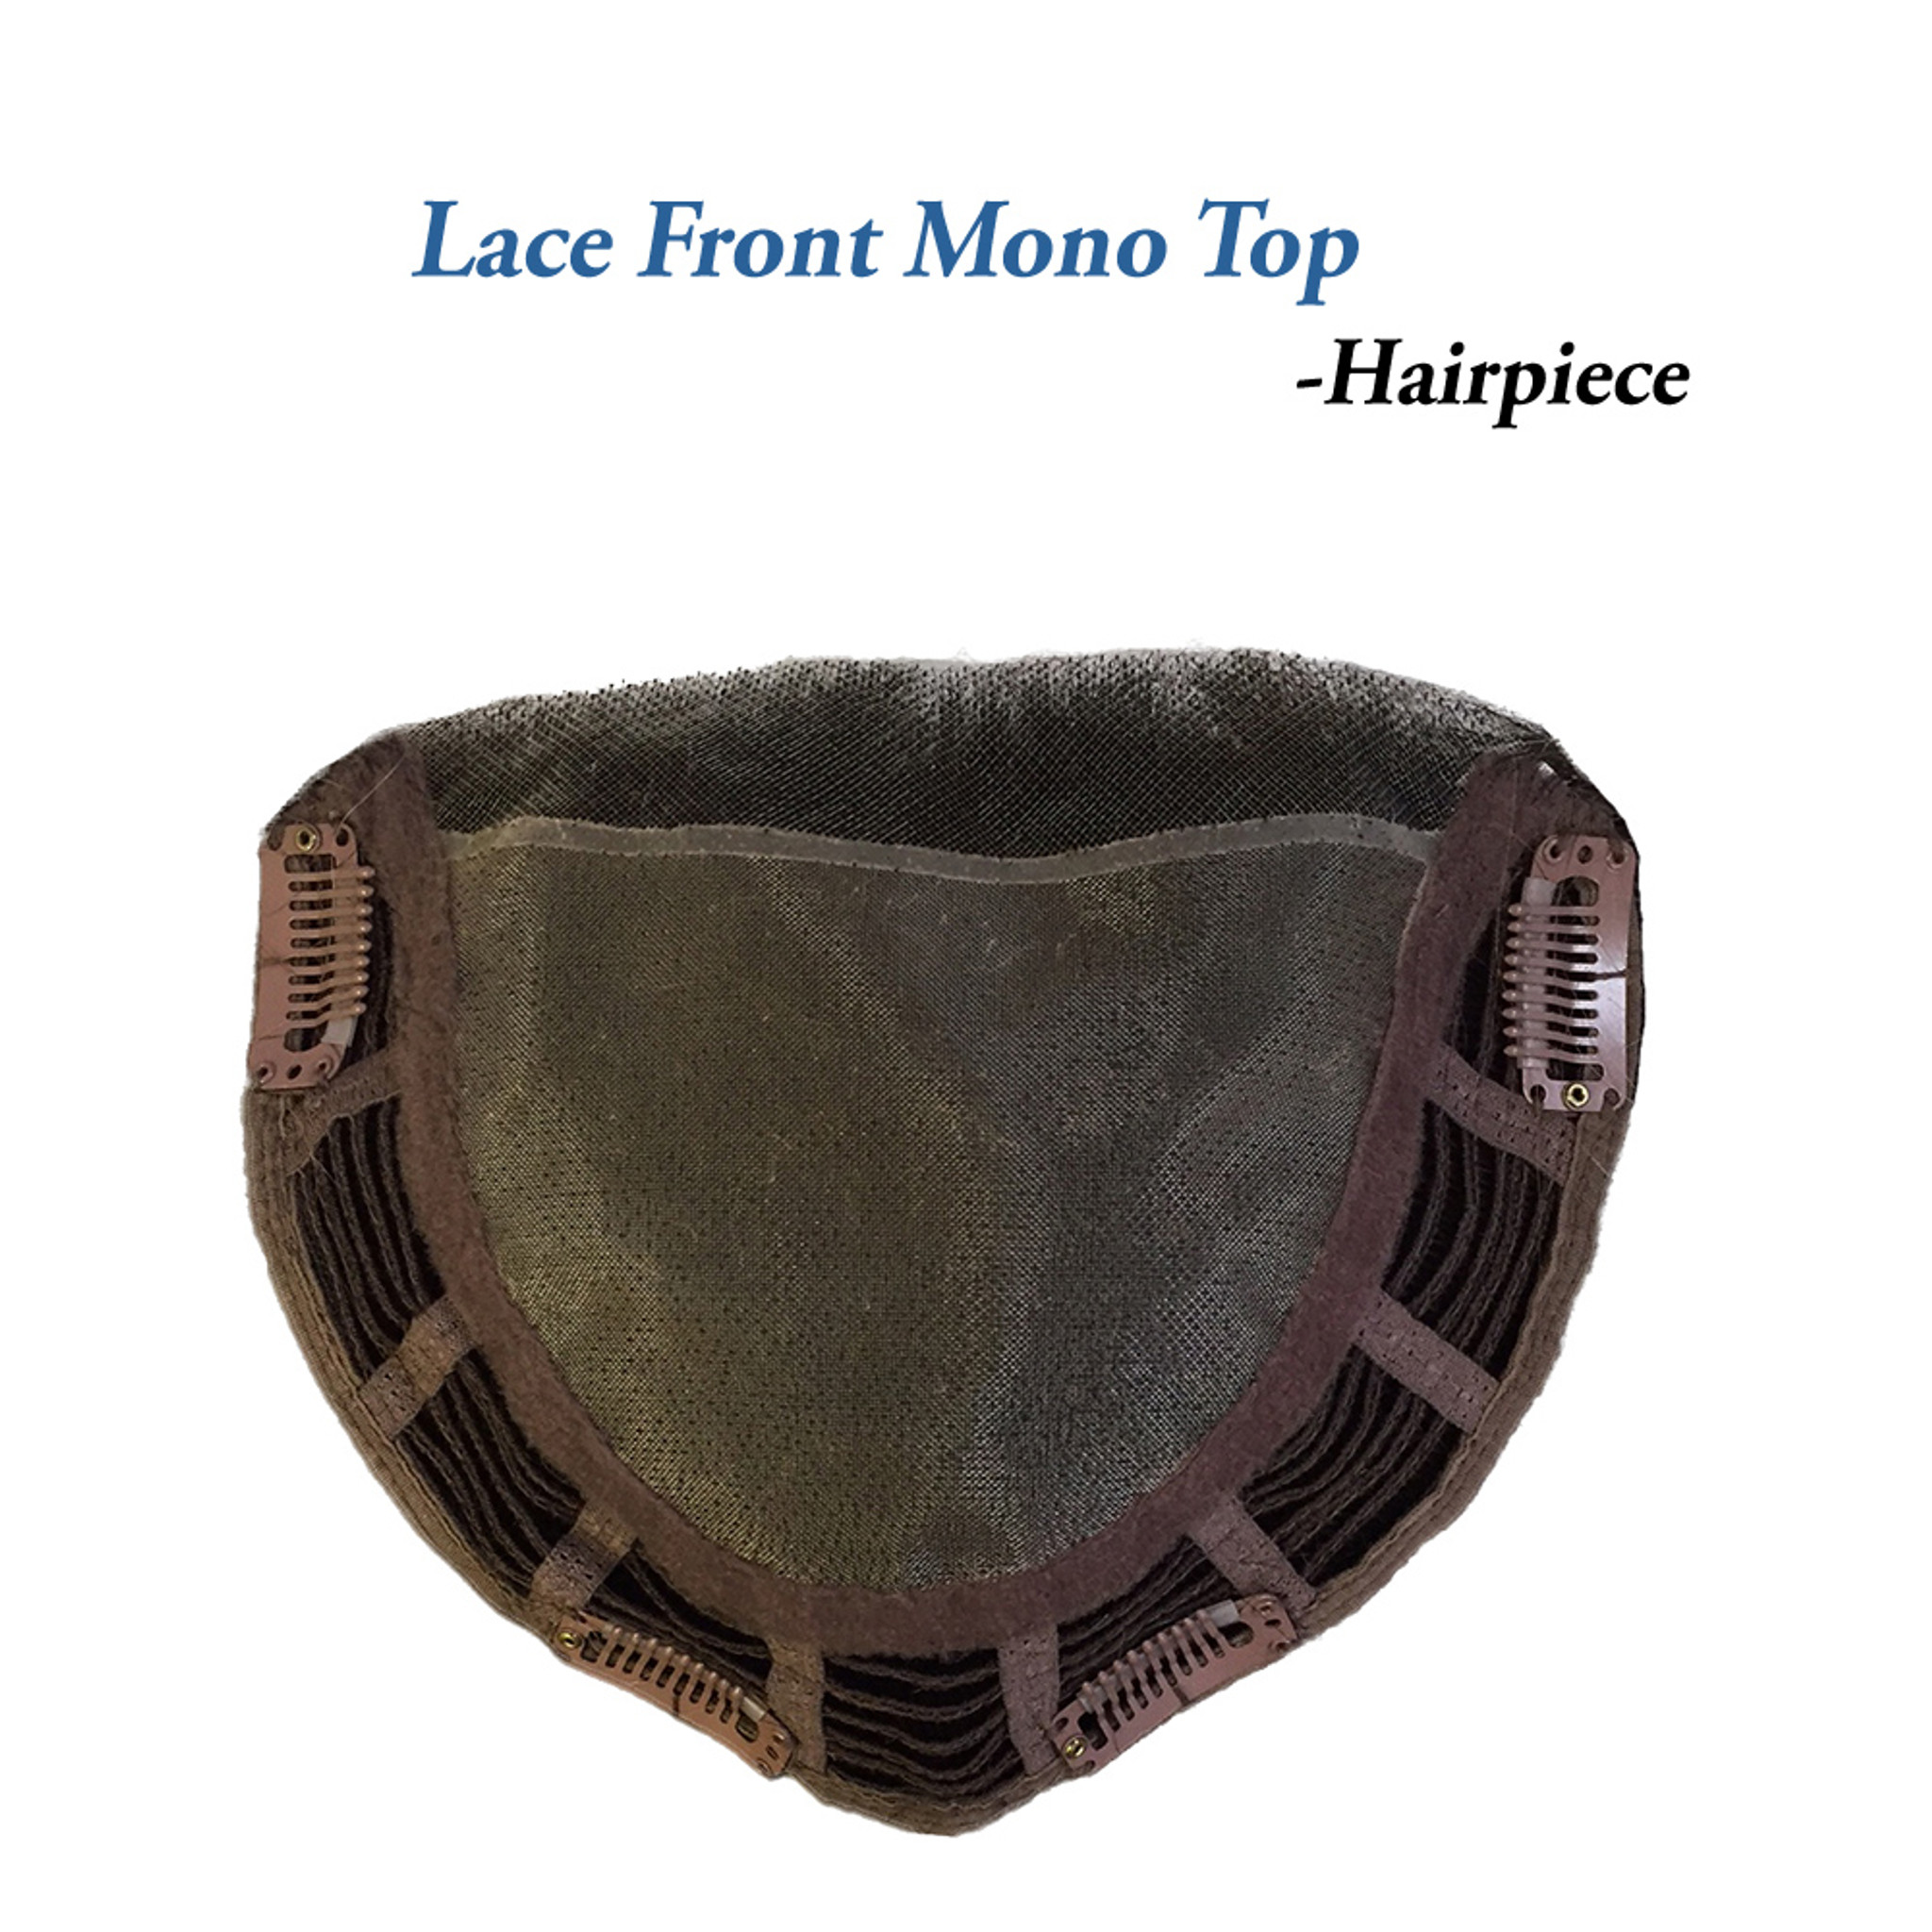 Biscotti Babe - Belle Tress - monofilament lace front  cap style